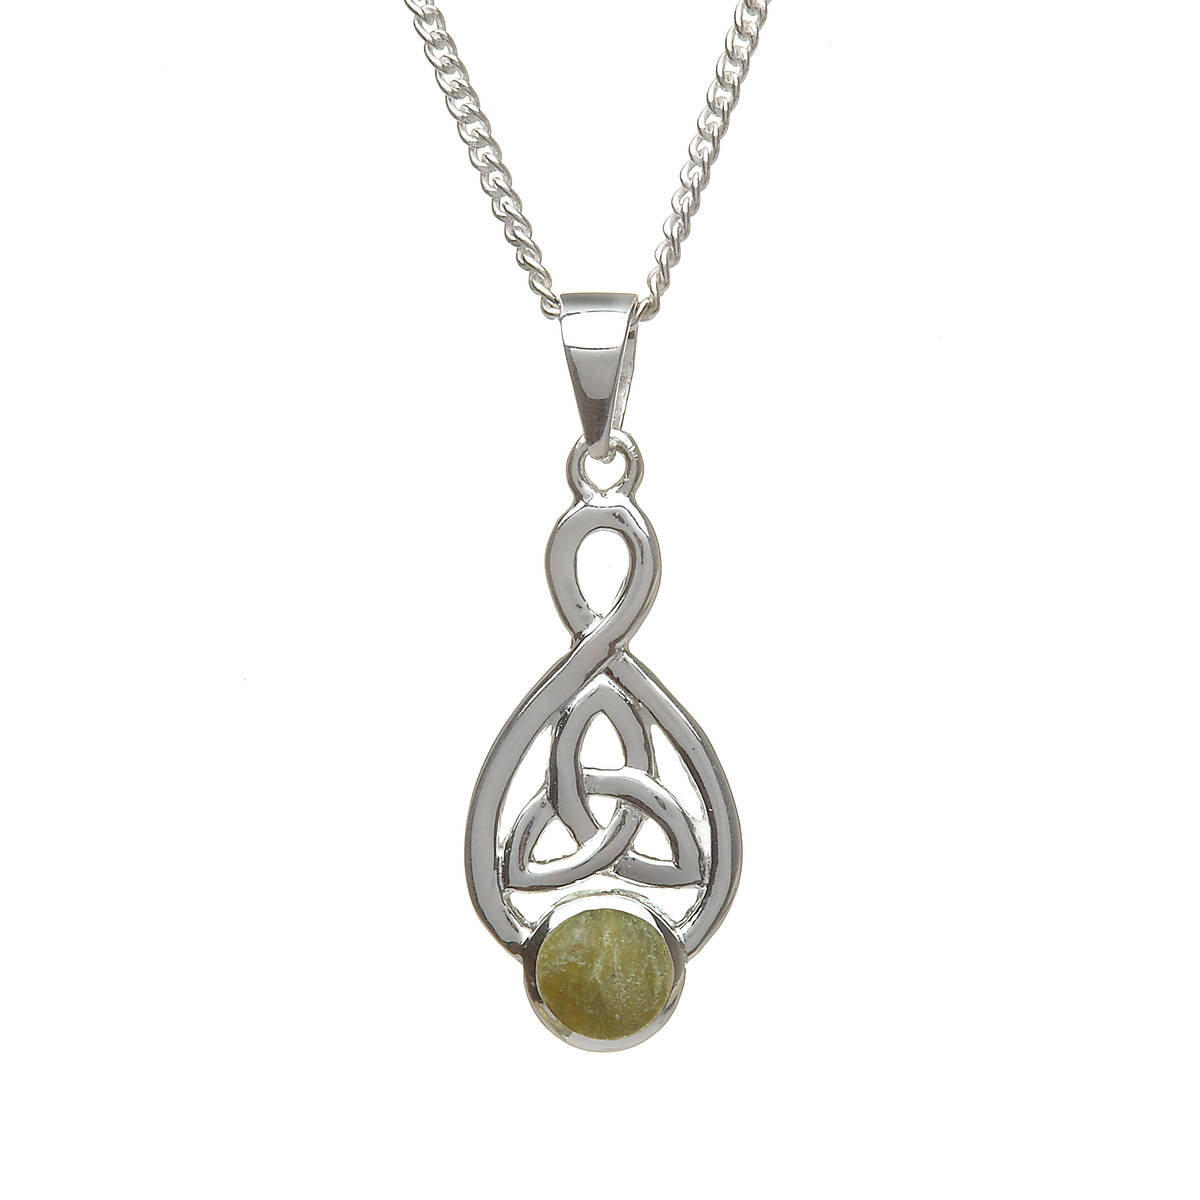 Silver Trinity Knot Pendant With Marble Inset